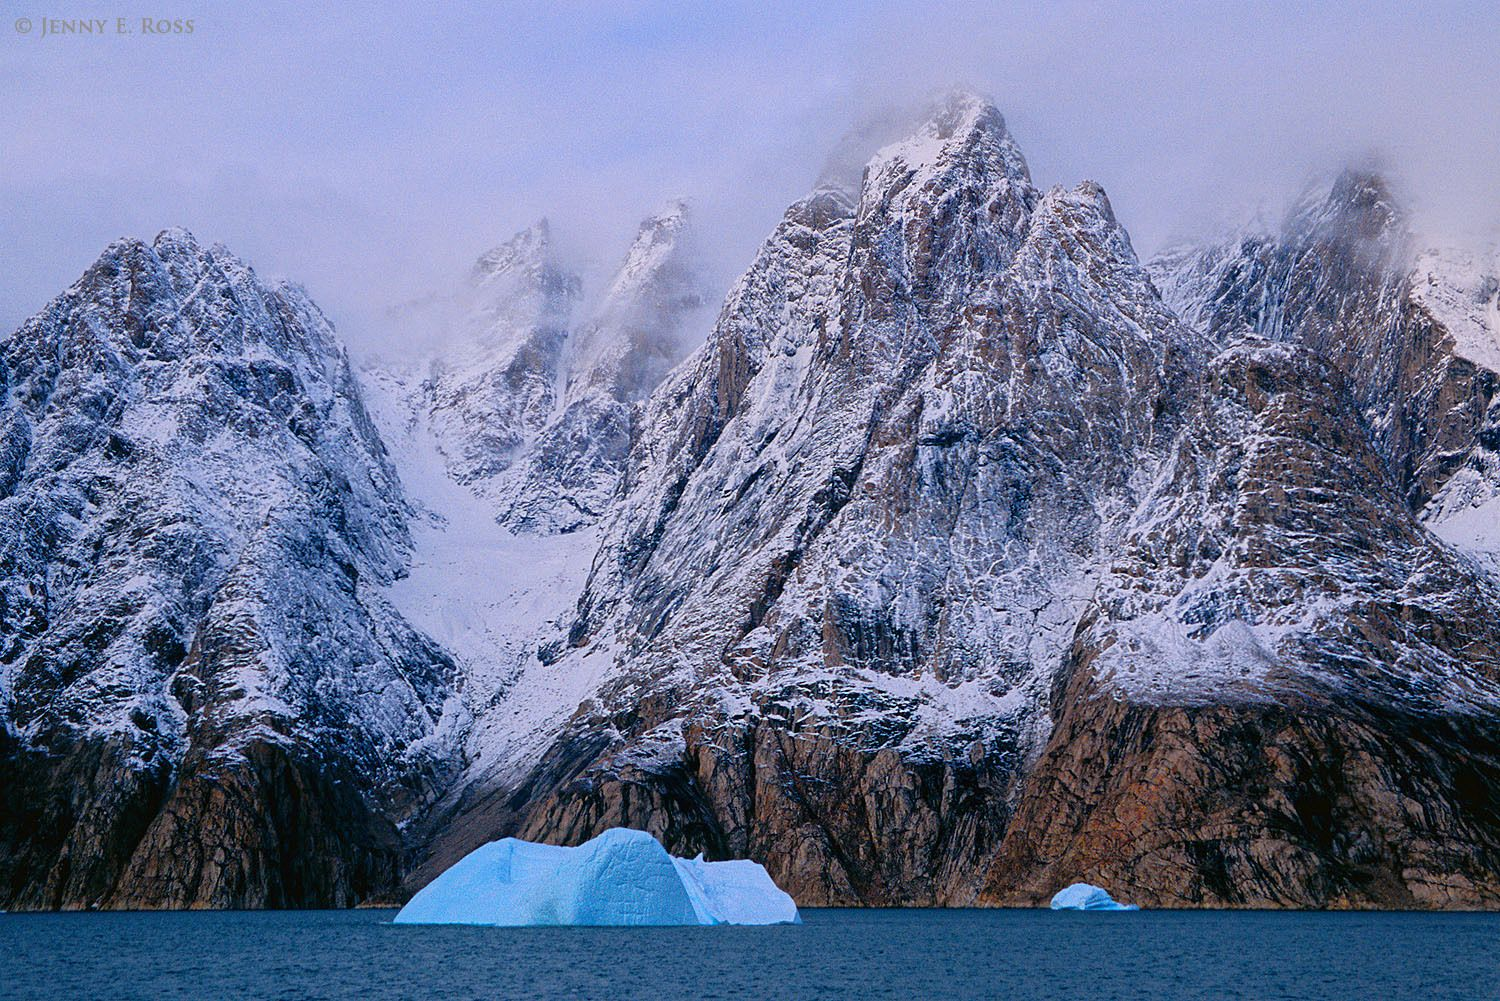 Fog-shrouded mountain spires and melting icebergs in Ofjord within Scoresby Sund, East Greenland.